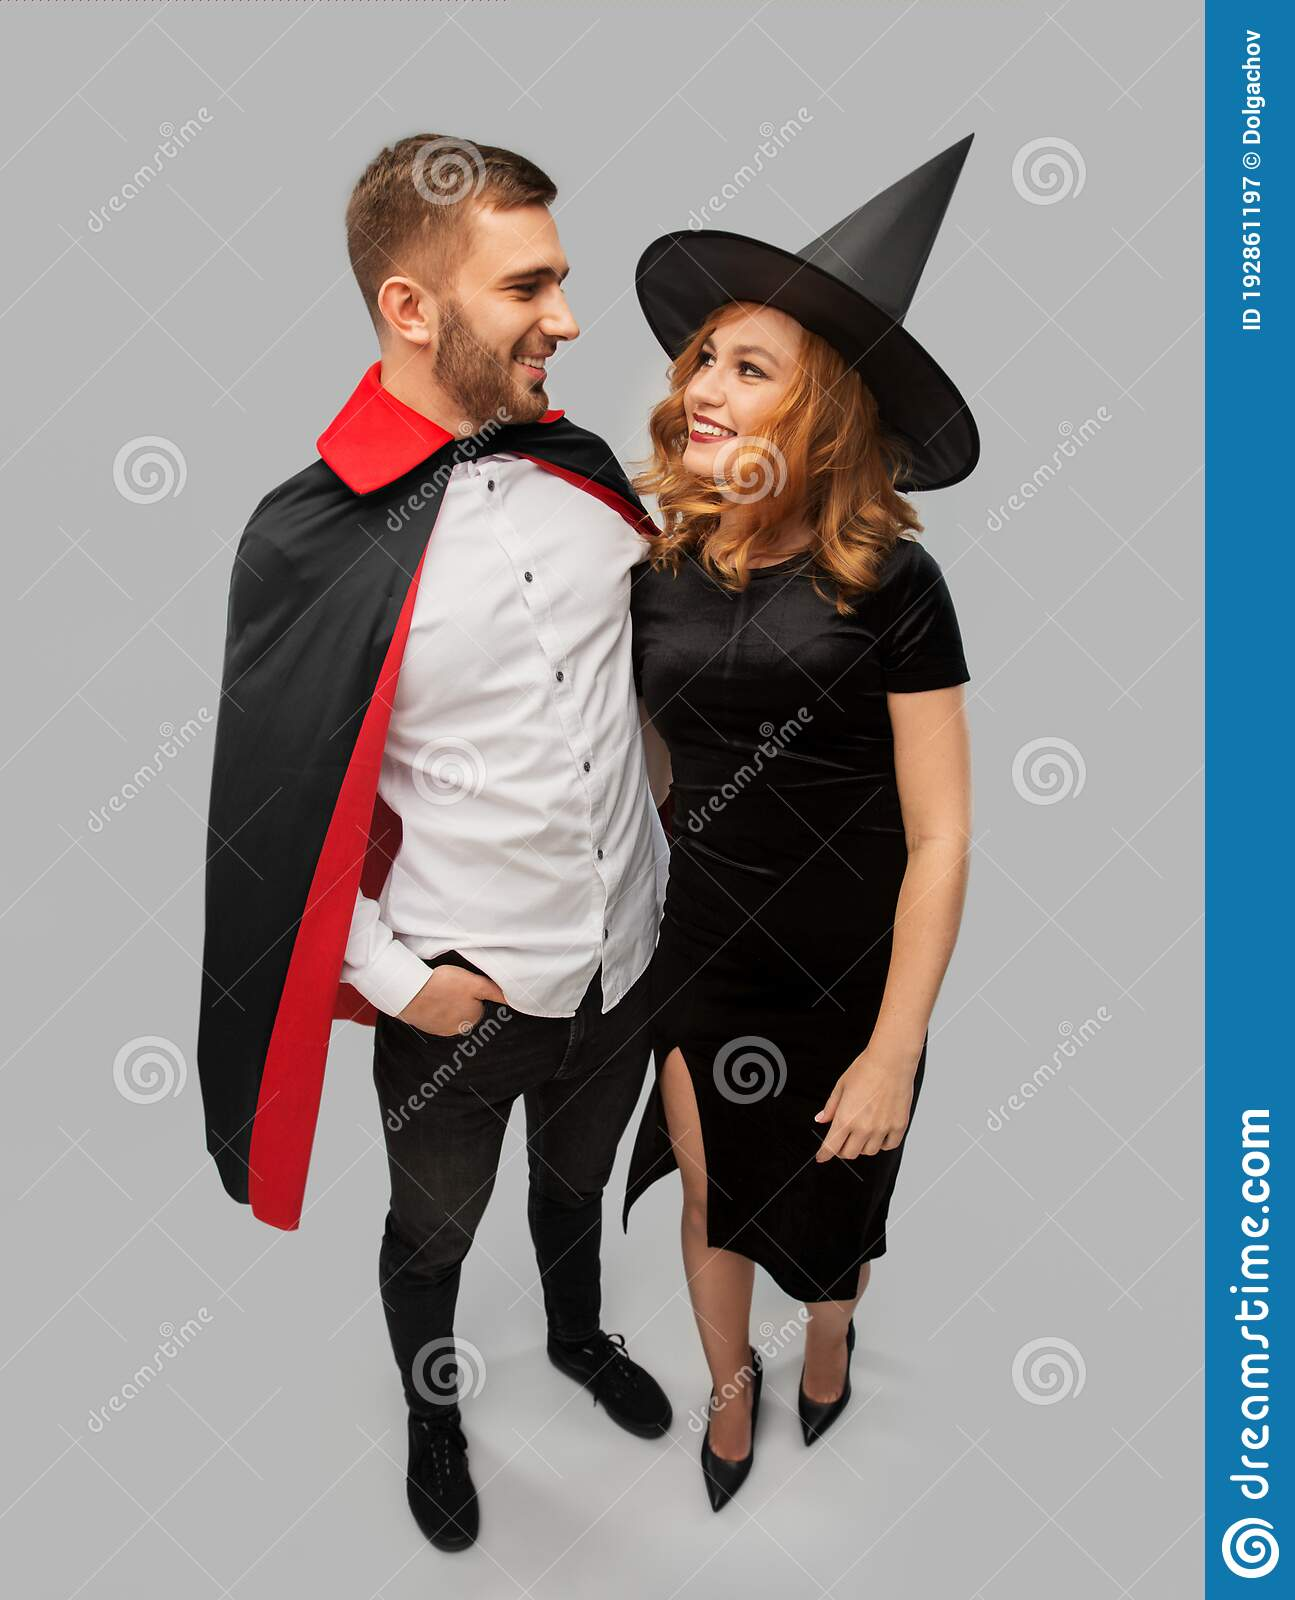 Vampire Couple Halloween Costumes.Couple In Halloween Costumes Of Witch And Vampire Stock Image Image Of Embracing Costume 192861197